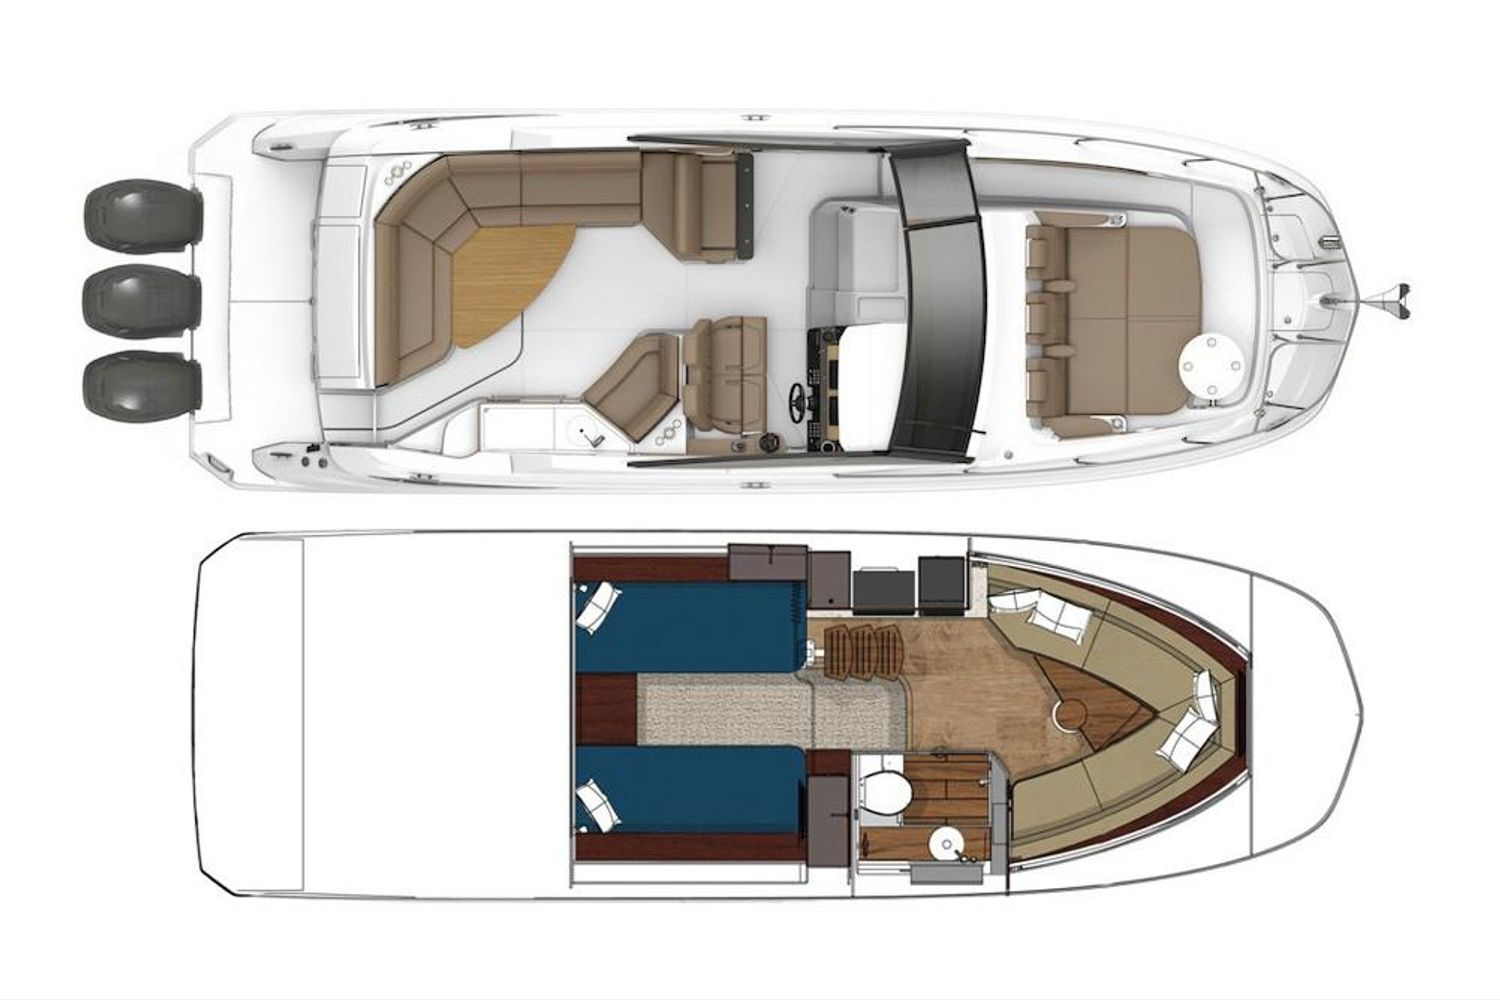 2021 Sea Ray                                                              Sundancer 320 OB Image Thumbnail #20